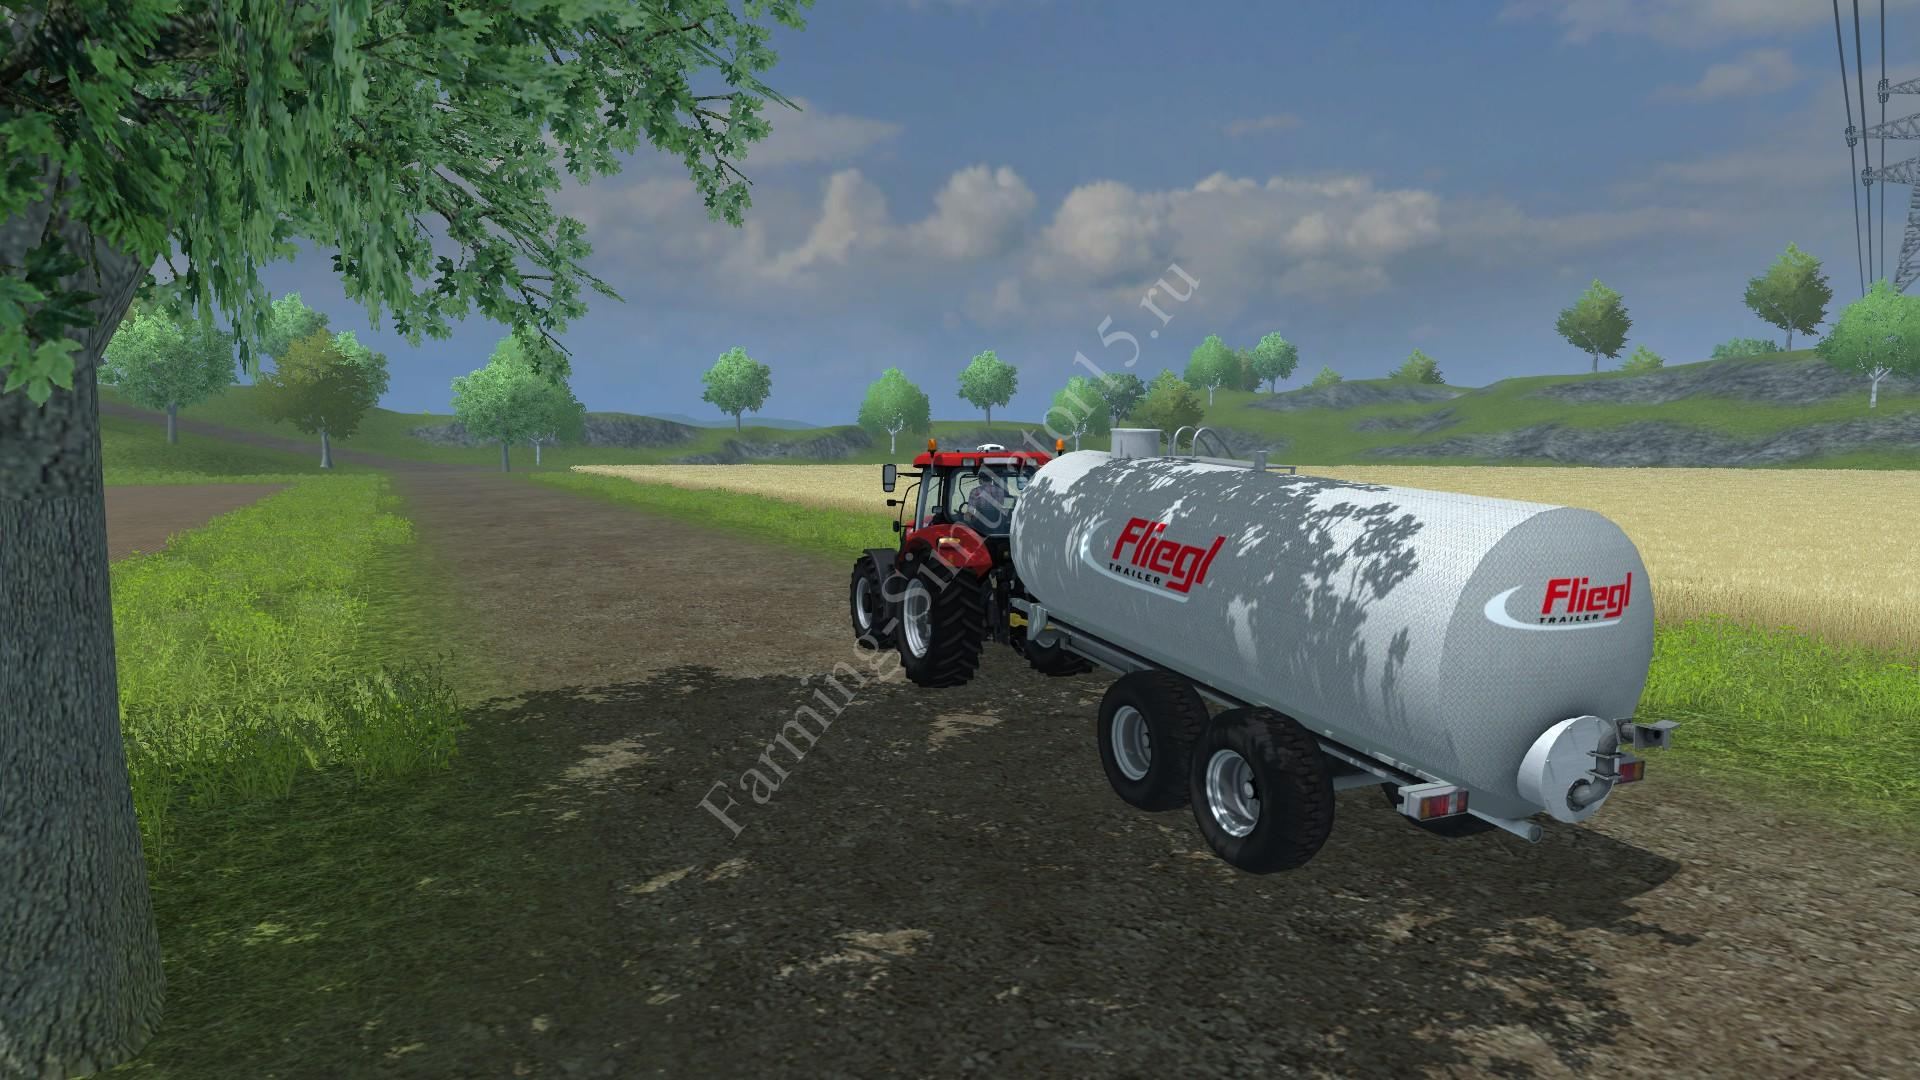 Мод прицепа Fliegl Pump v 1.0 Farming Simulator 2013, Farming Simulator 13